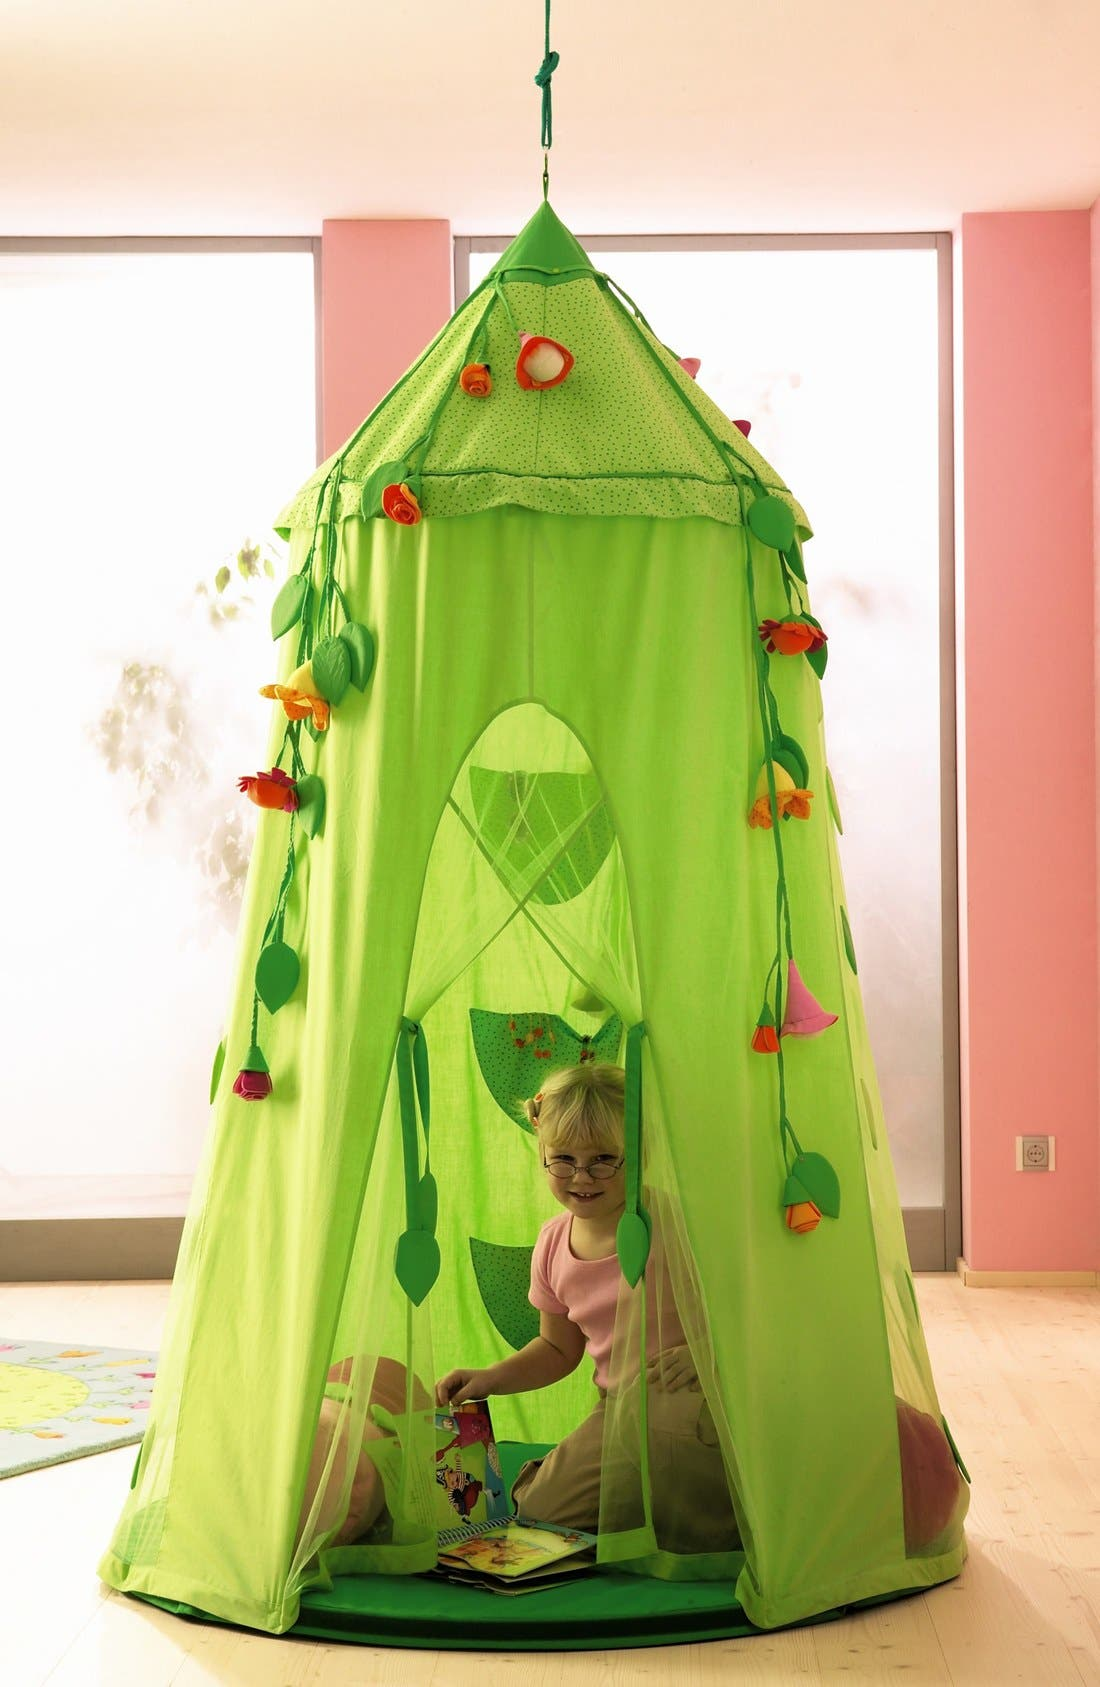 'Blossom Sky' Hanging Play Tent,                             Alternate thumbnail 2, color,                             Green